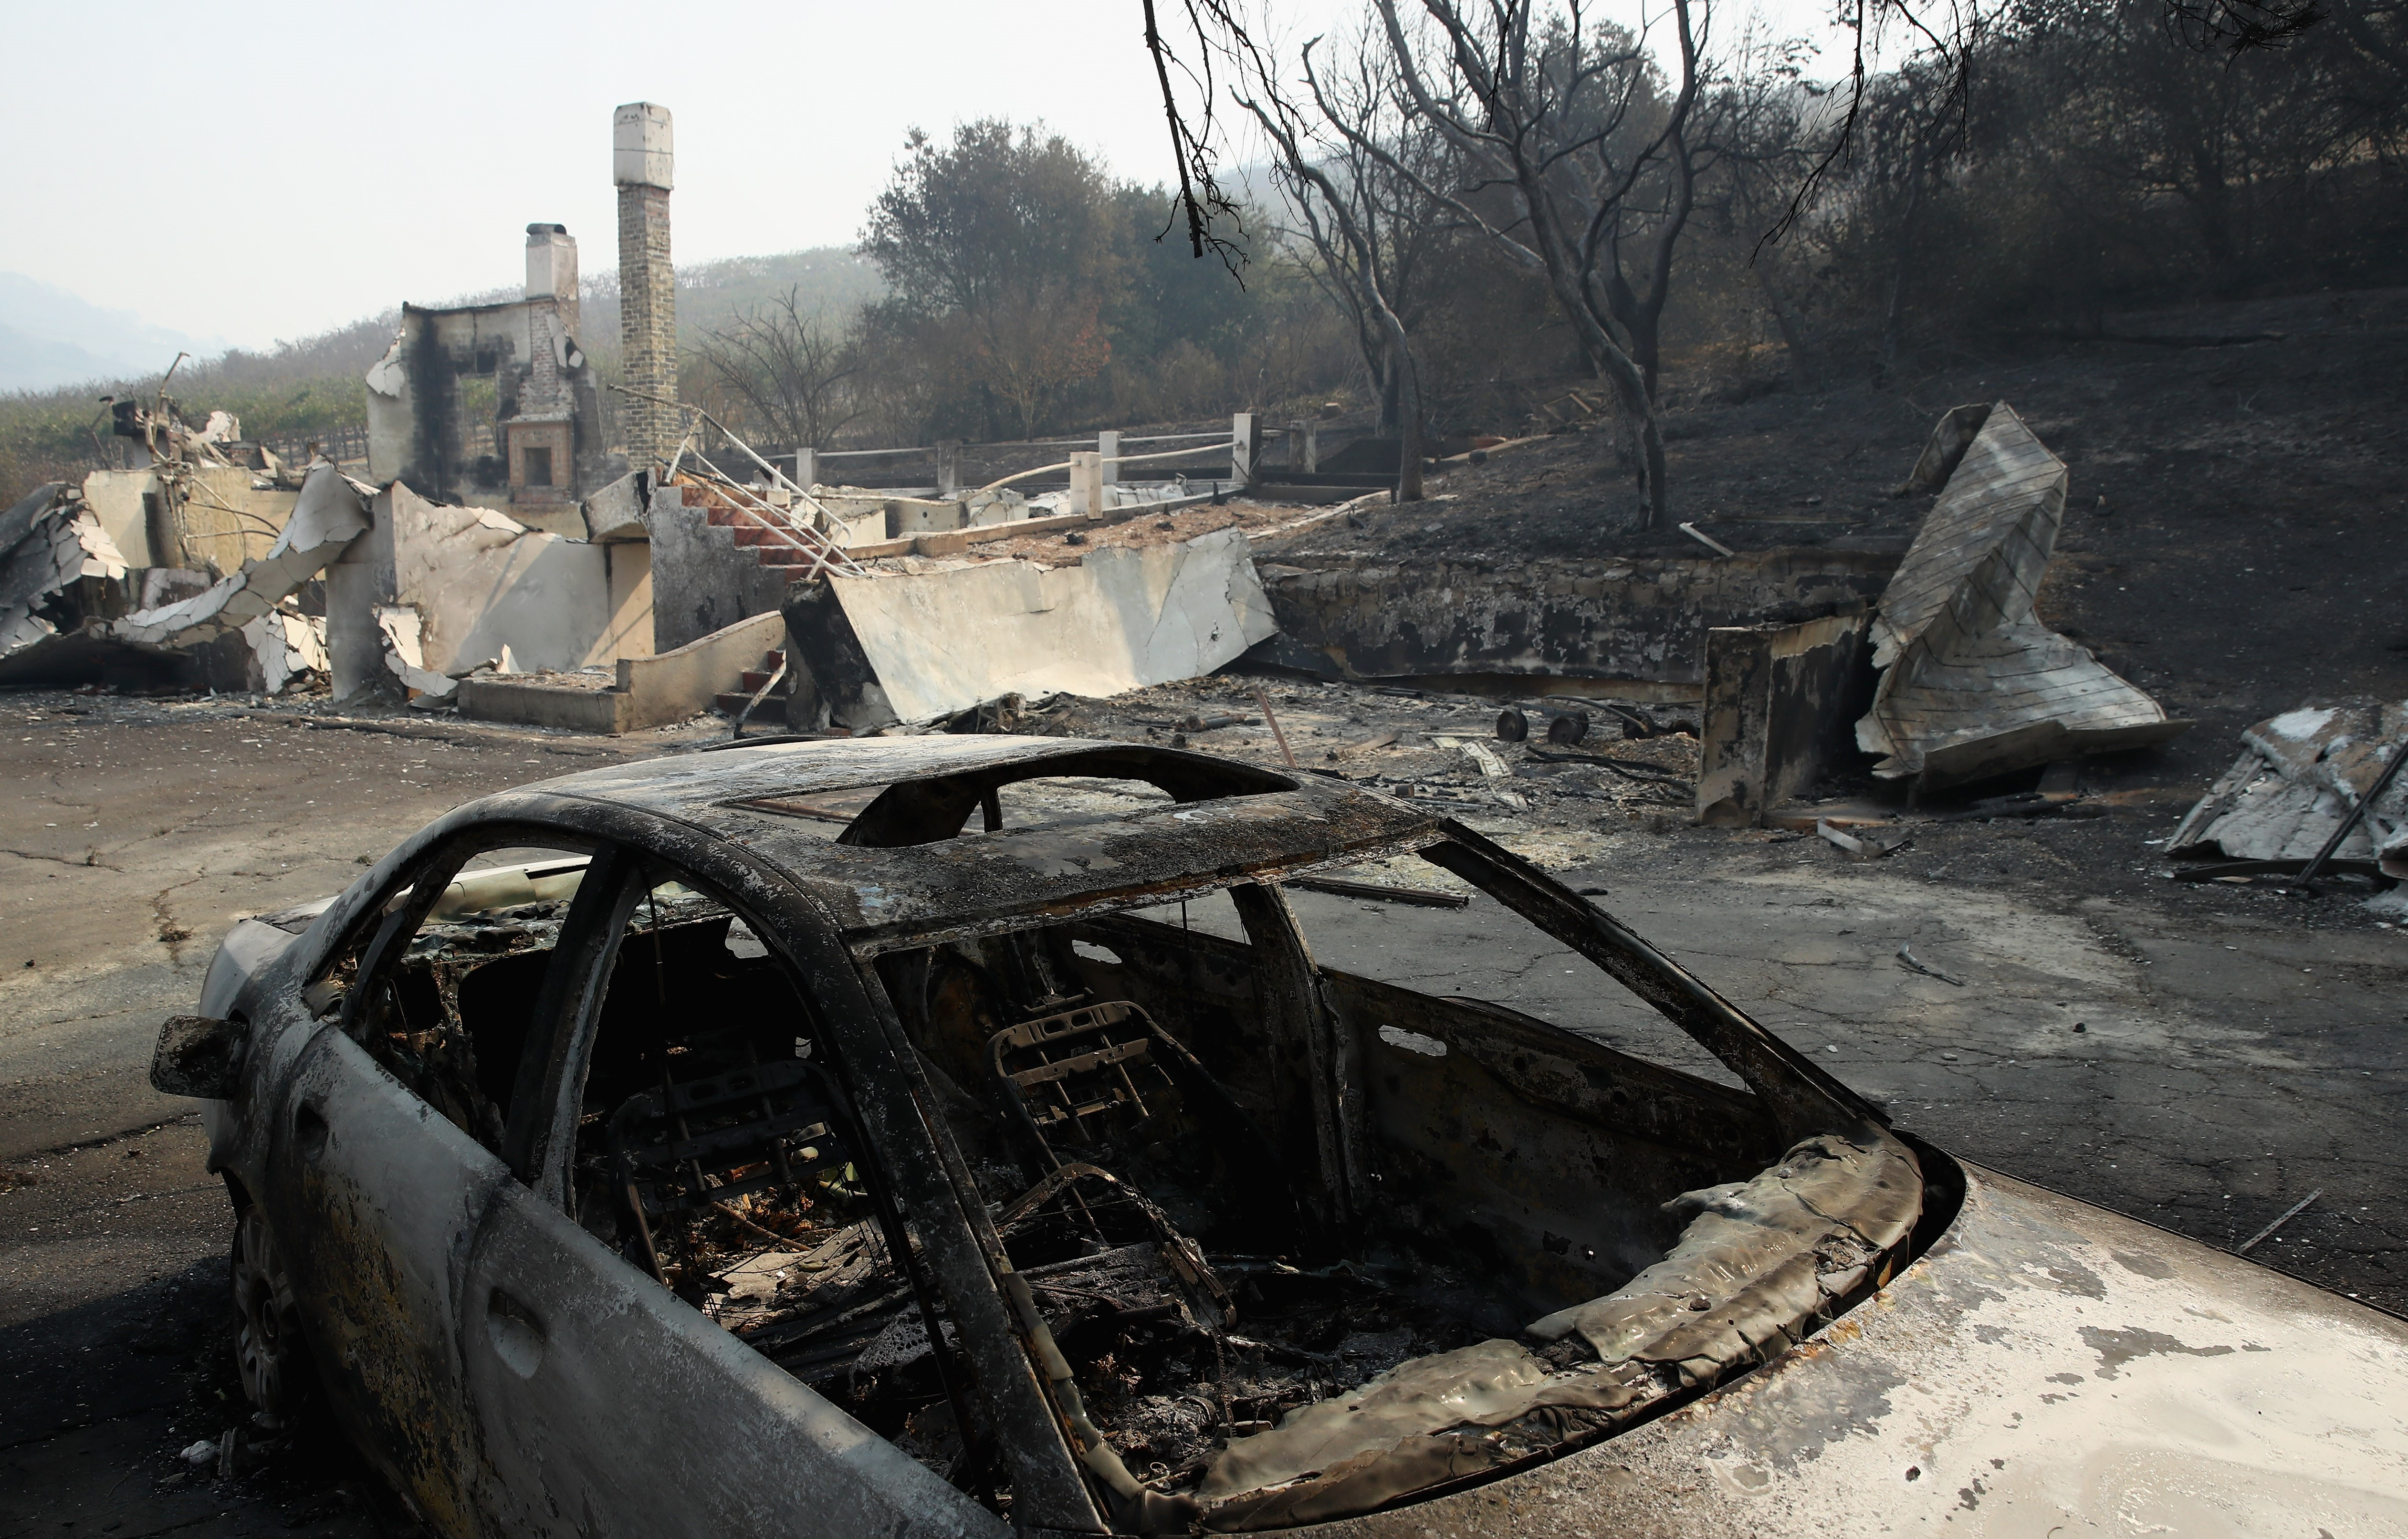 How PG&E Will Pay $1 Billion to Cover California Wildfire Settlement